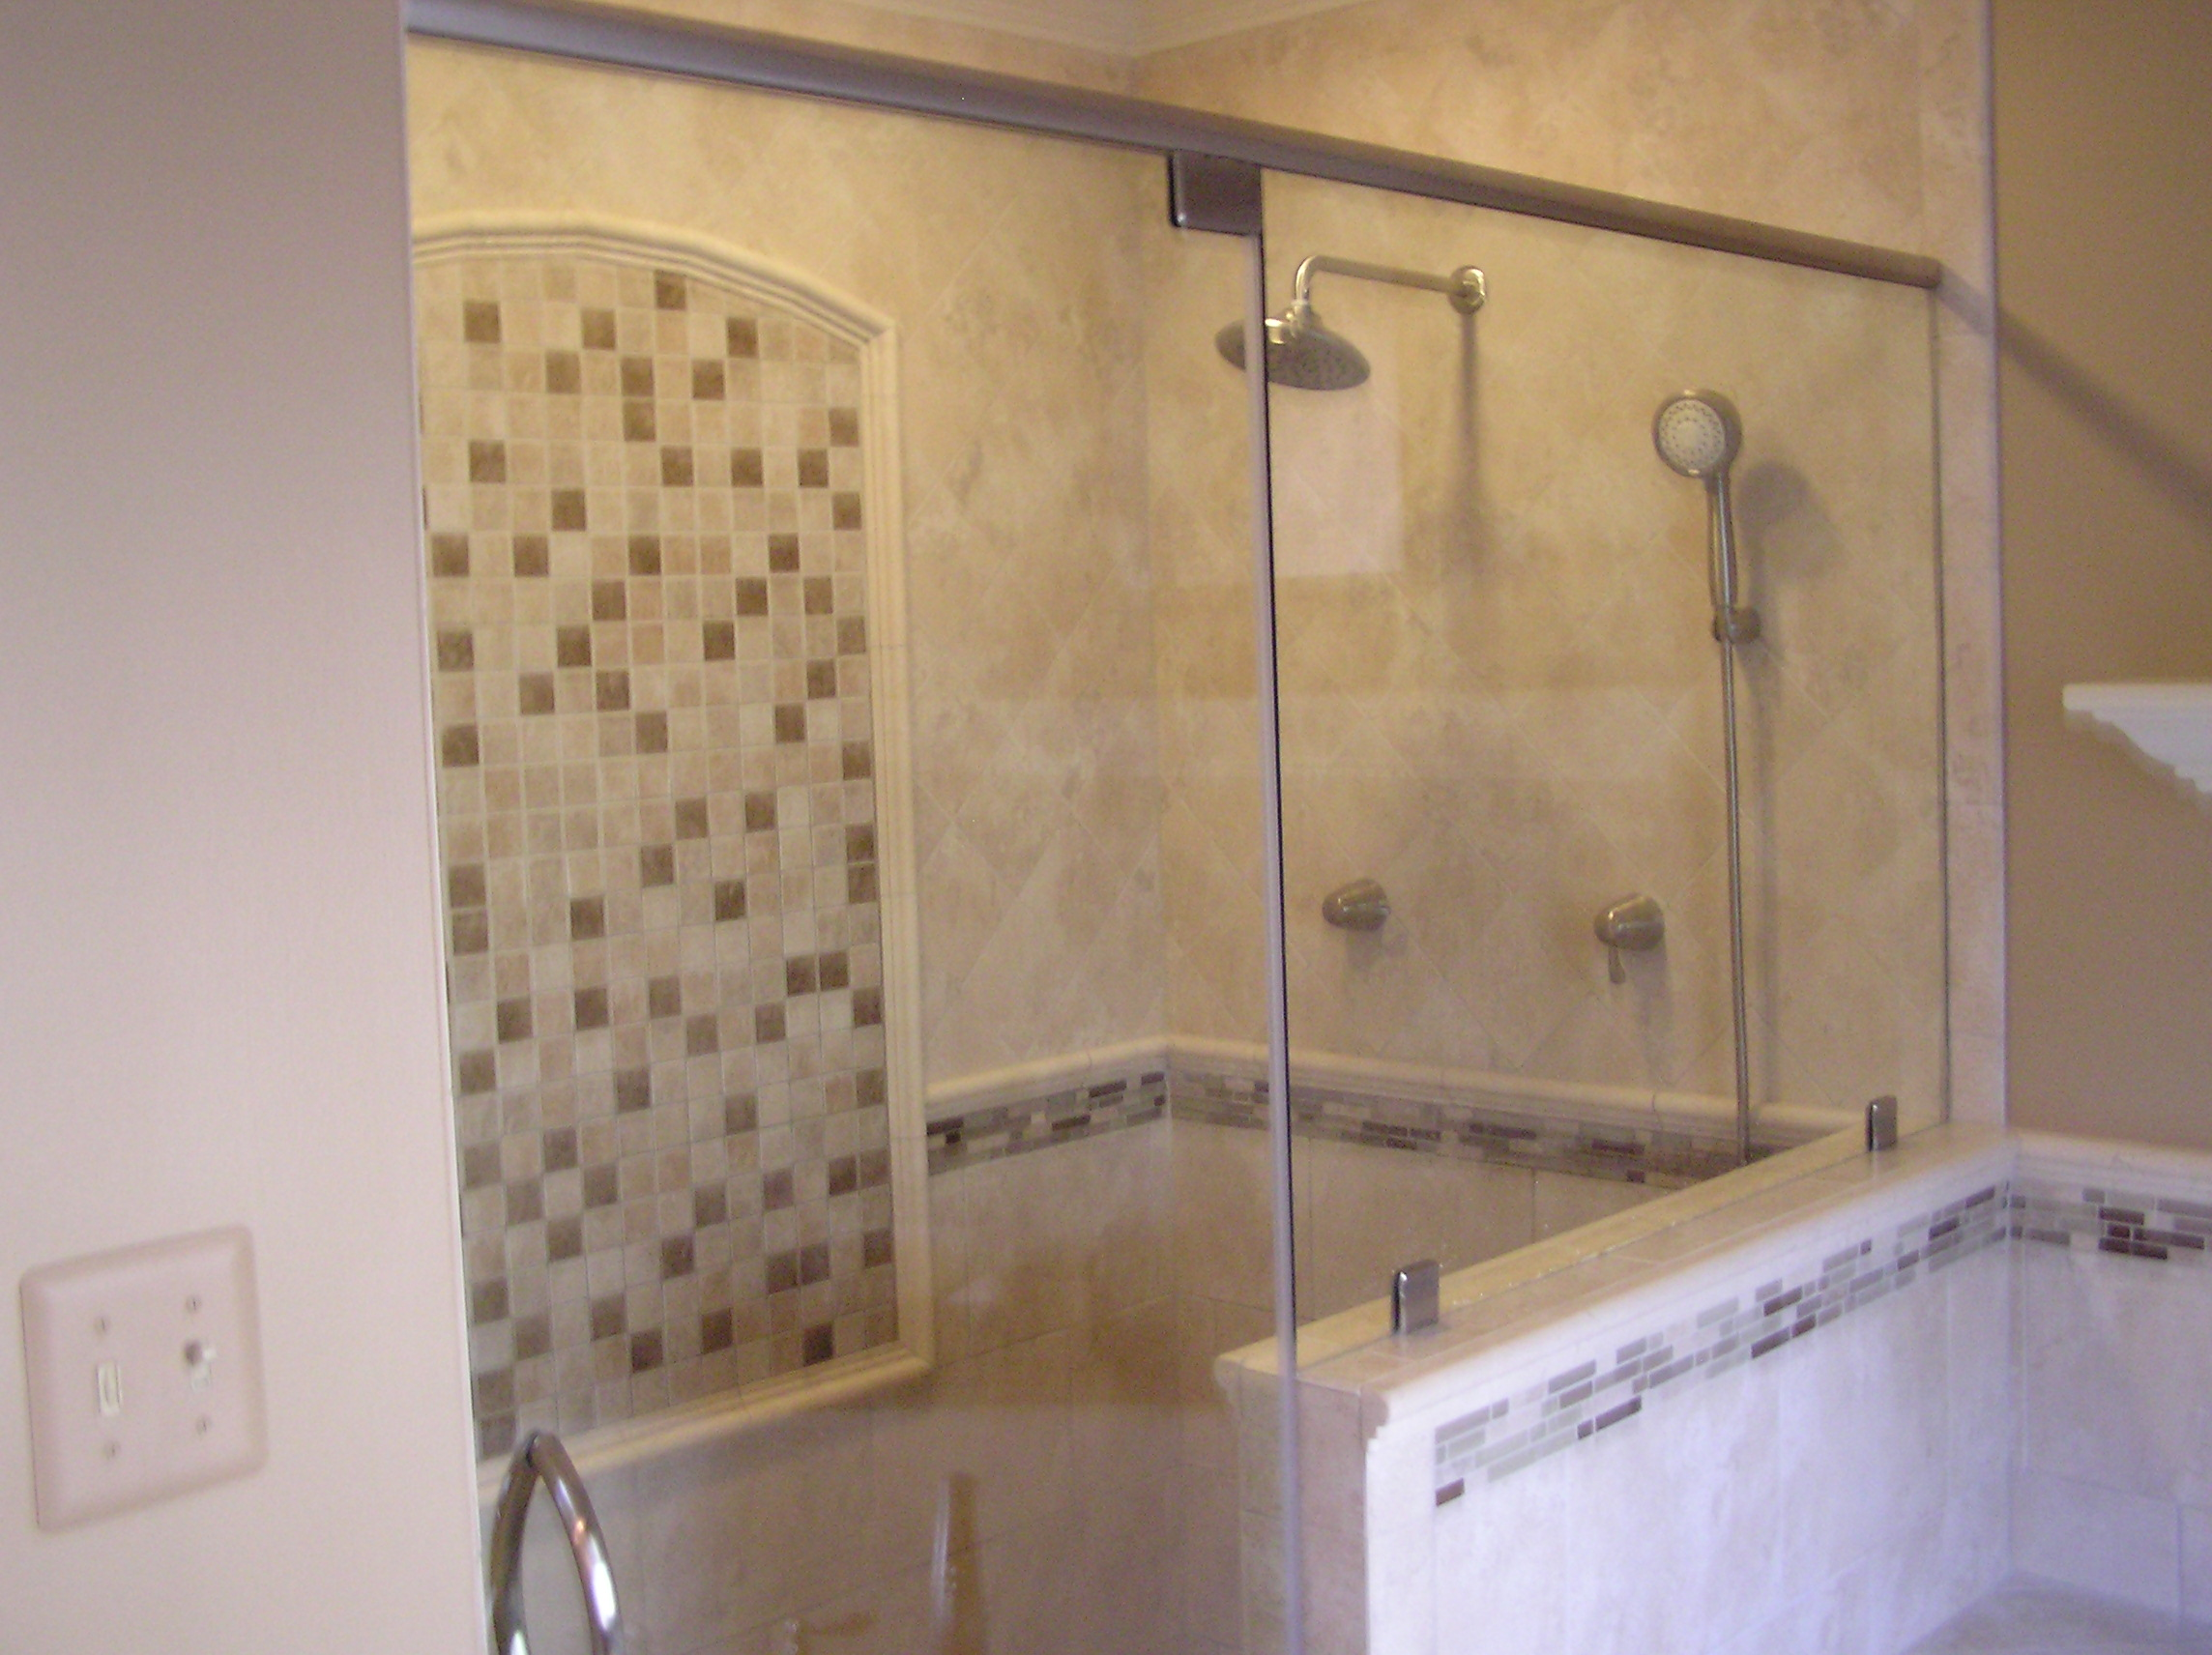 Bathroom Remodel Tile Shower. Bathroom Remodel Ideas Walk In Shower Tile F